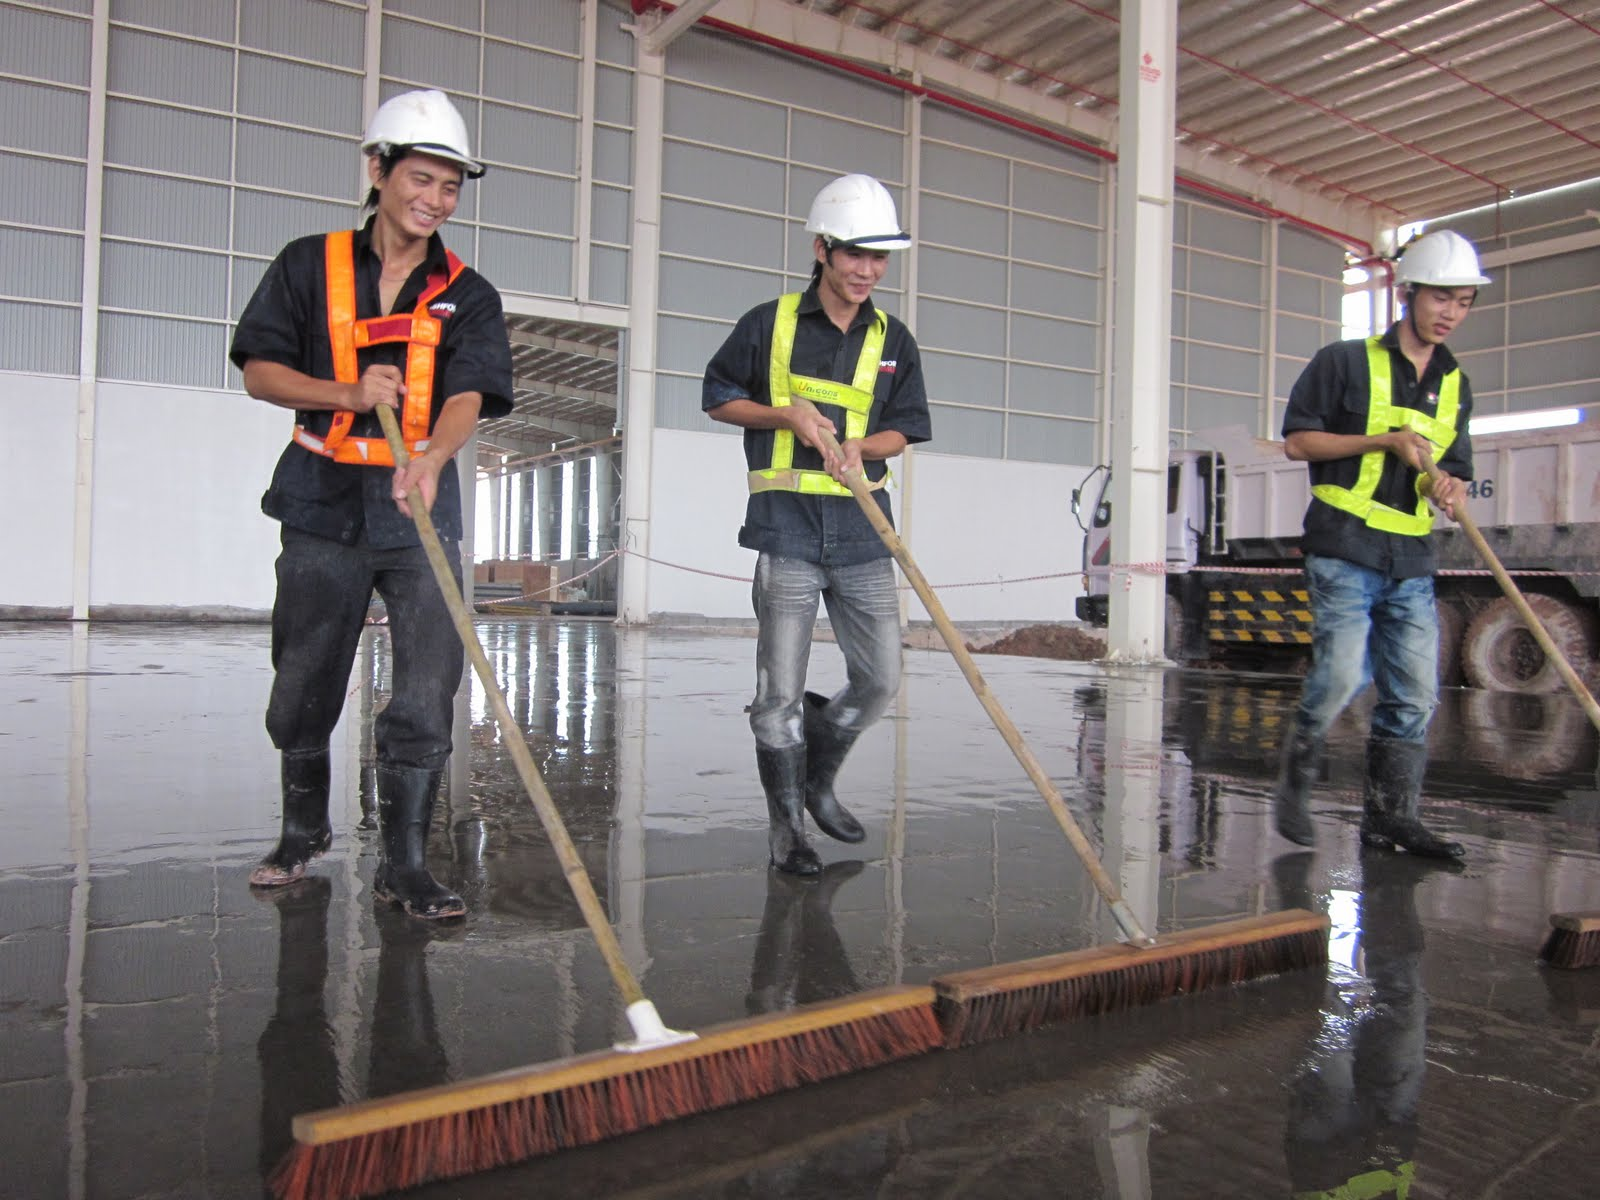 Is there a cure for decorative concrete curing concrete is there a cure for decorative concrete curing concrete construction magazine concrete curing decorative concrete associations research astm geenschuldenfo Image collections